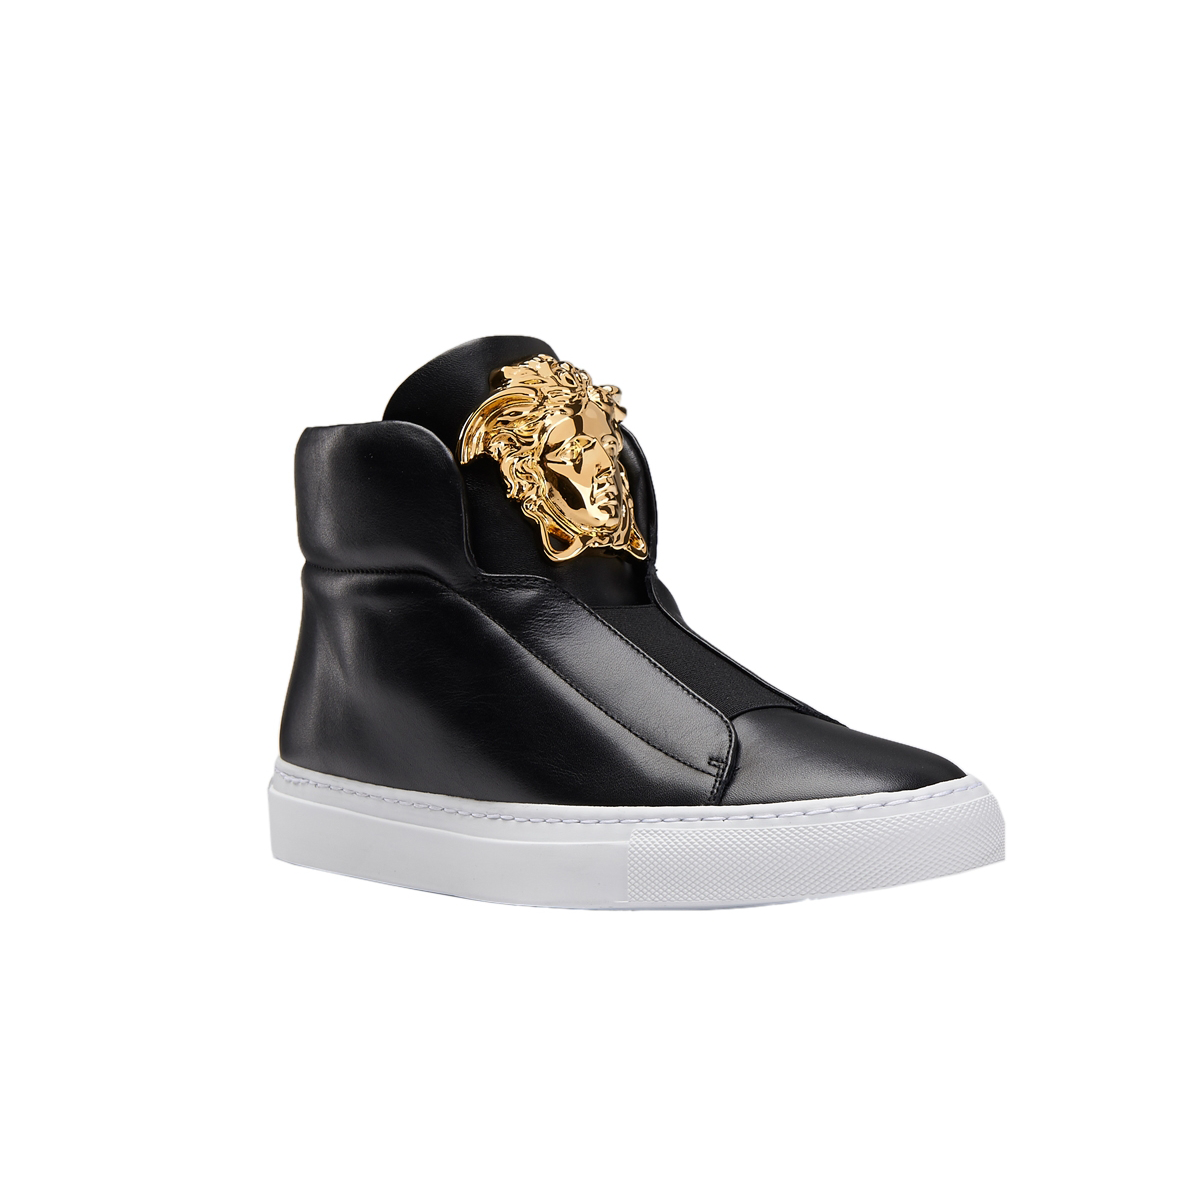 quality design 86726 55e43 These black Palazzo high-top trainers are the perfect ...